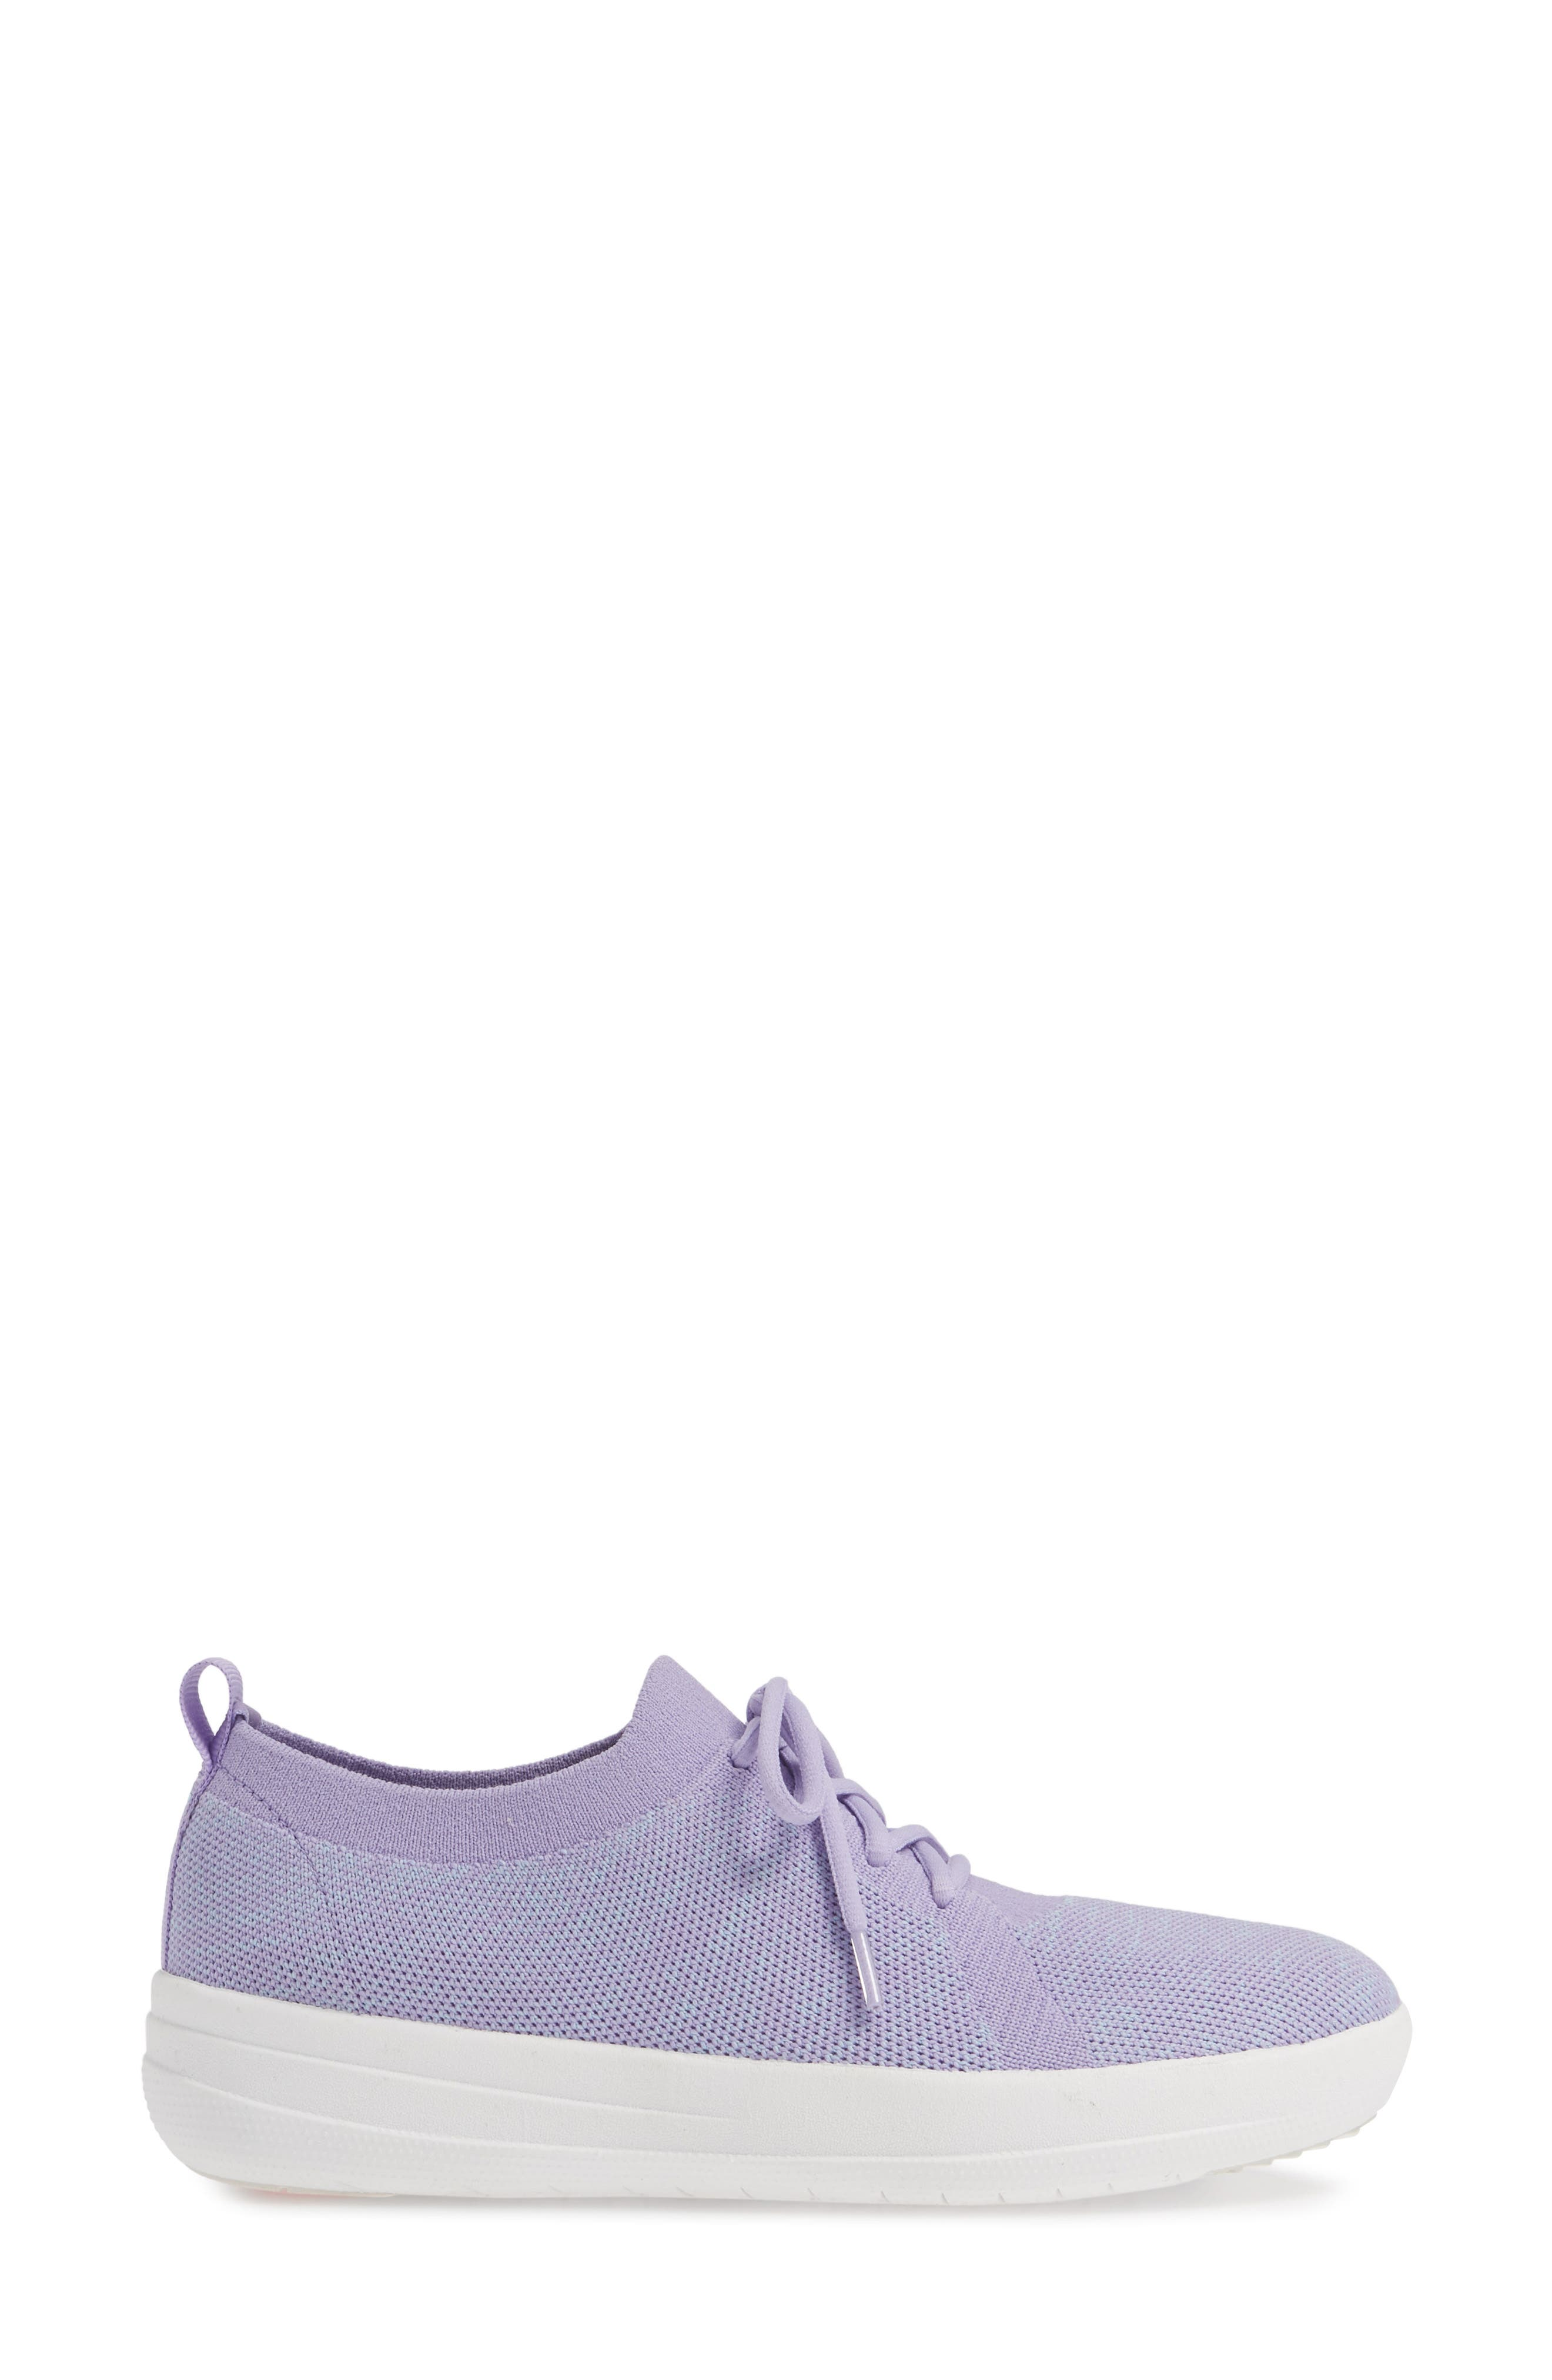 F-Sporty Uberknit<sup>™</sup> Sneaker,                             Alternate thumbnail 3, color,                             FROSTED LAVENDER MIX